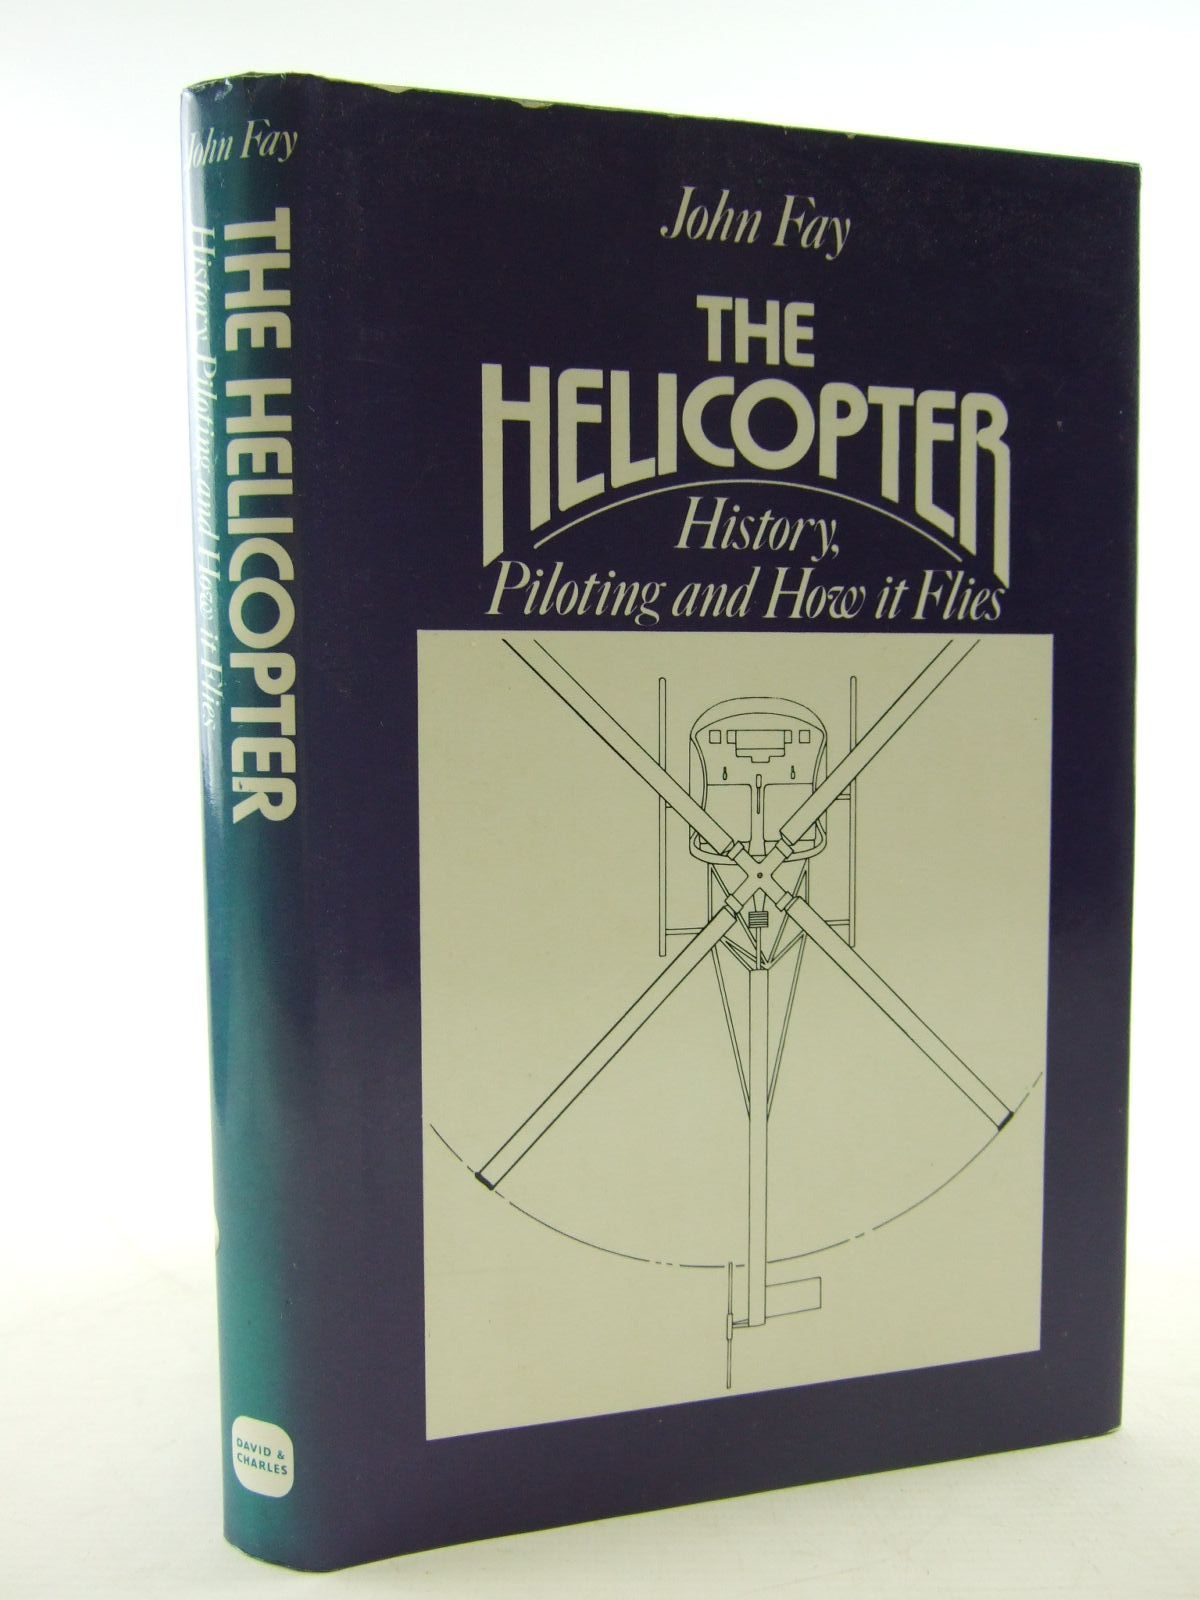 The Helicopter Piloting and How it Flies History